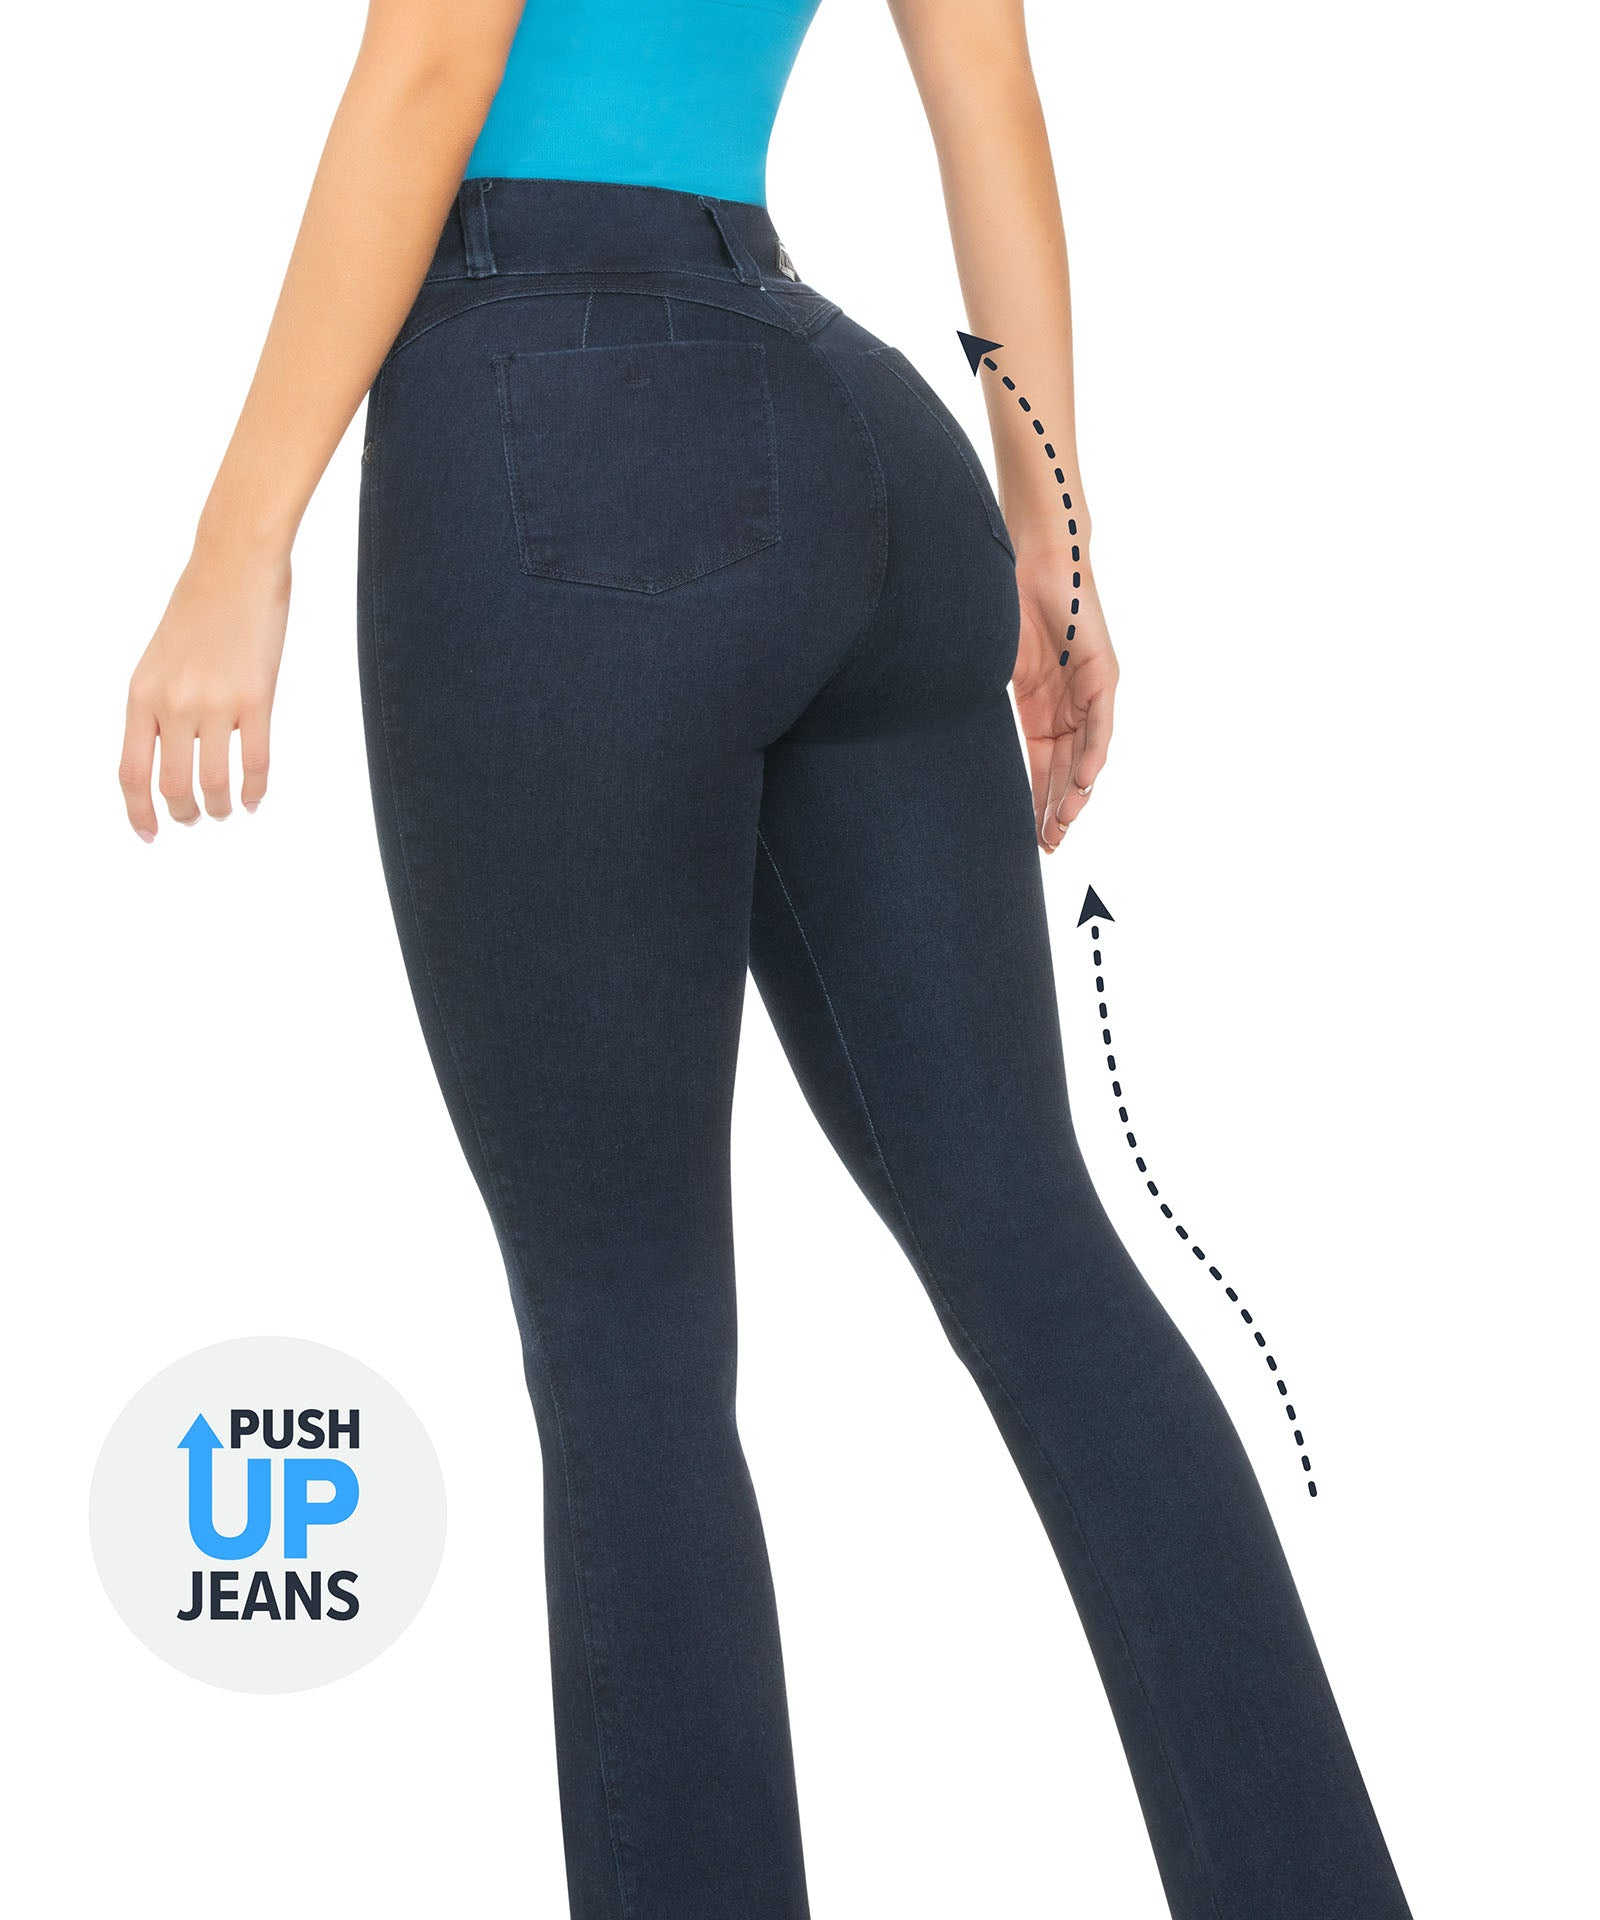 2036 - Push Up Jean by CYSM